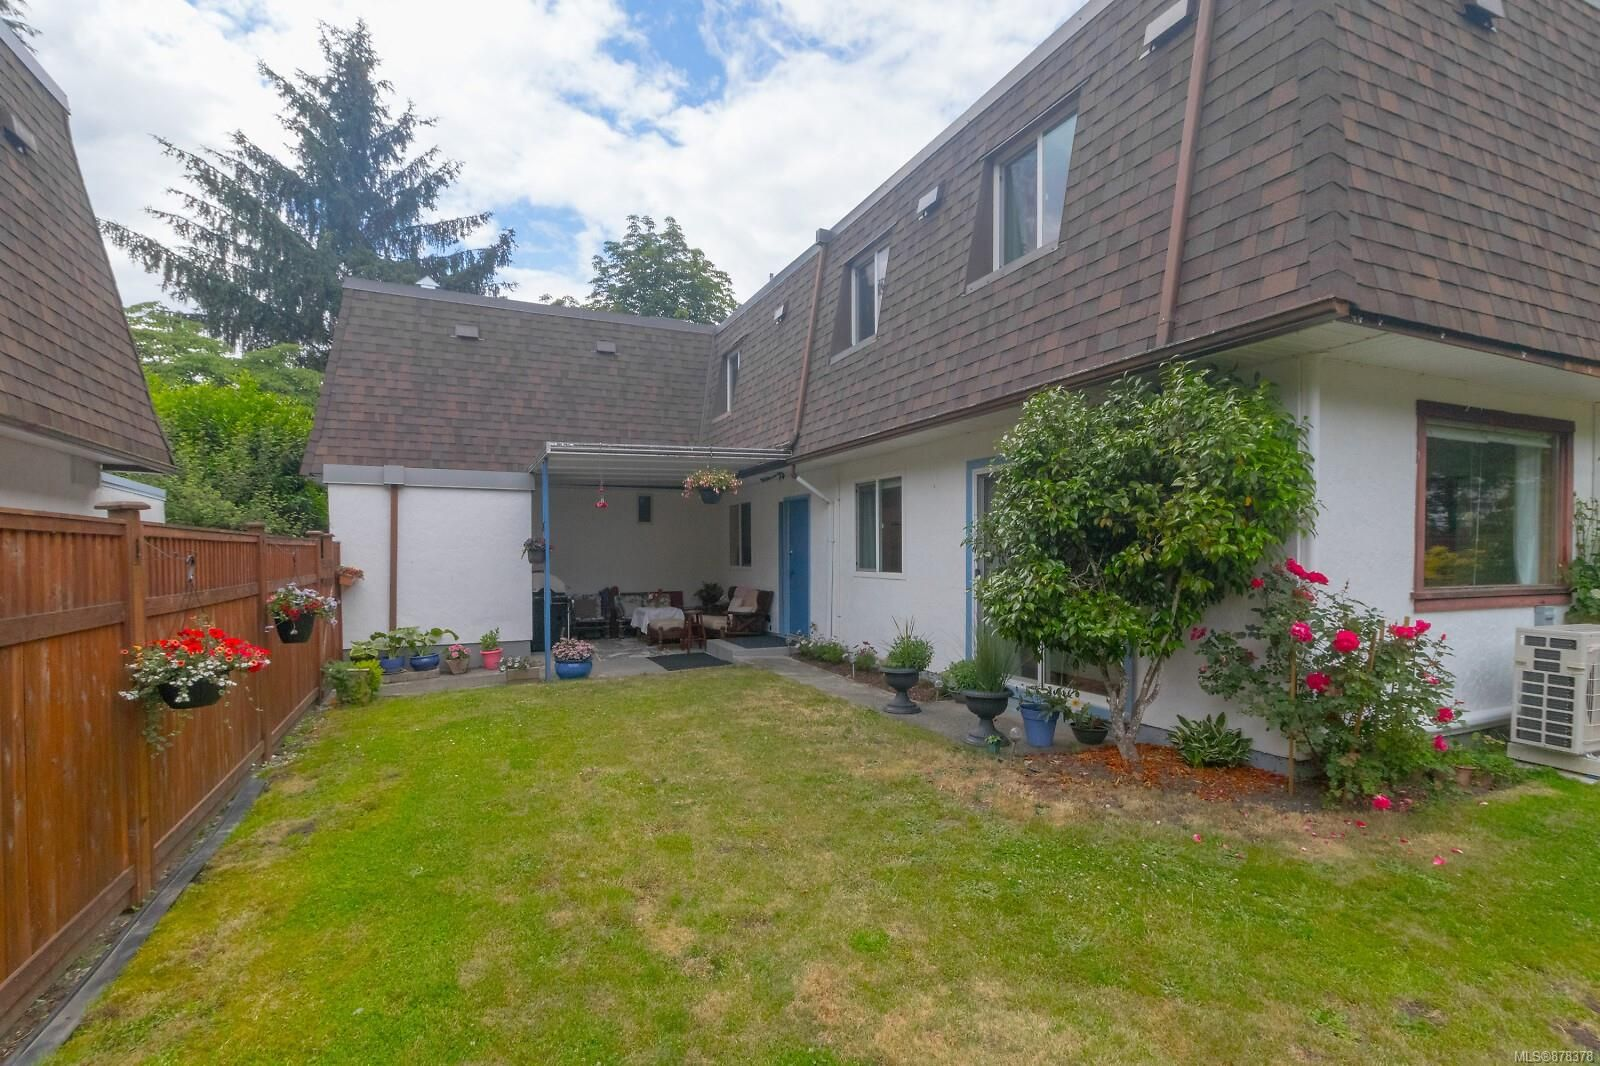 Main Photo: 26 3208 Gibbins Rd in : Du West Duncan Row/Townhouse for sale (Duncan)  : MLS®# 878378